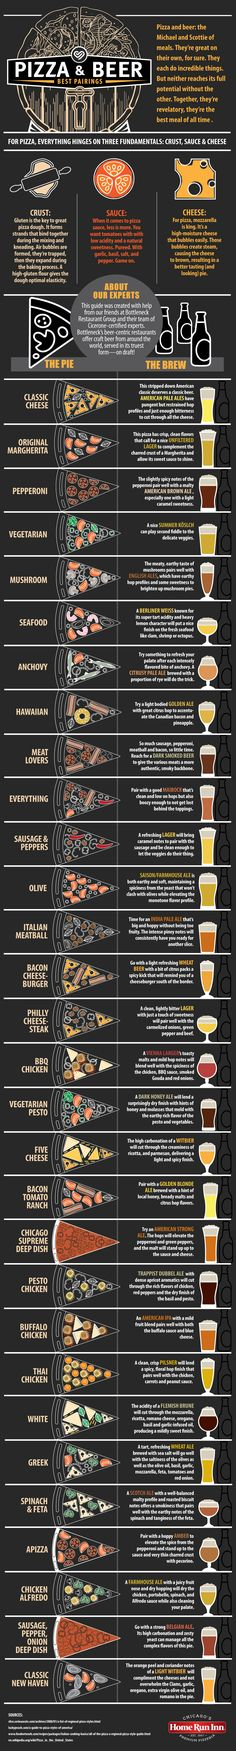 The Ultimate Beer and Pizza Pairing Guide (Infographic)